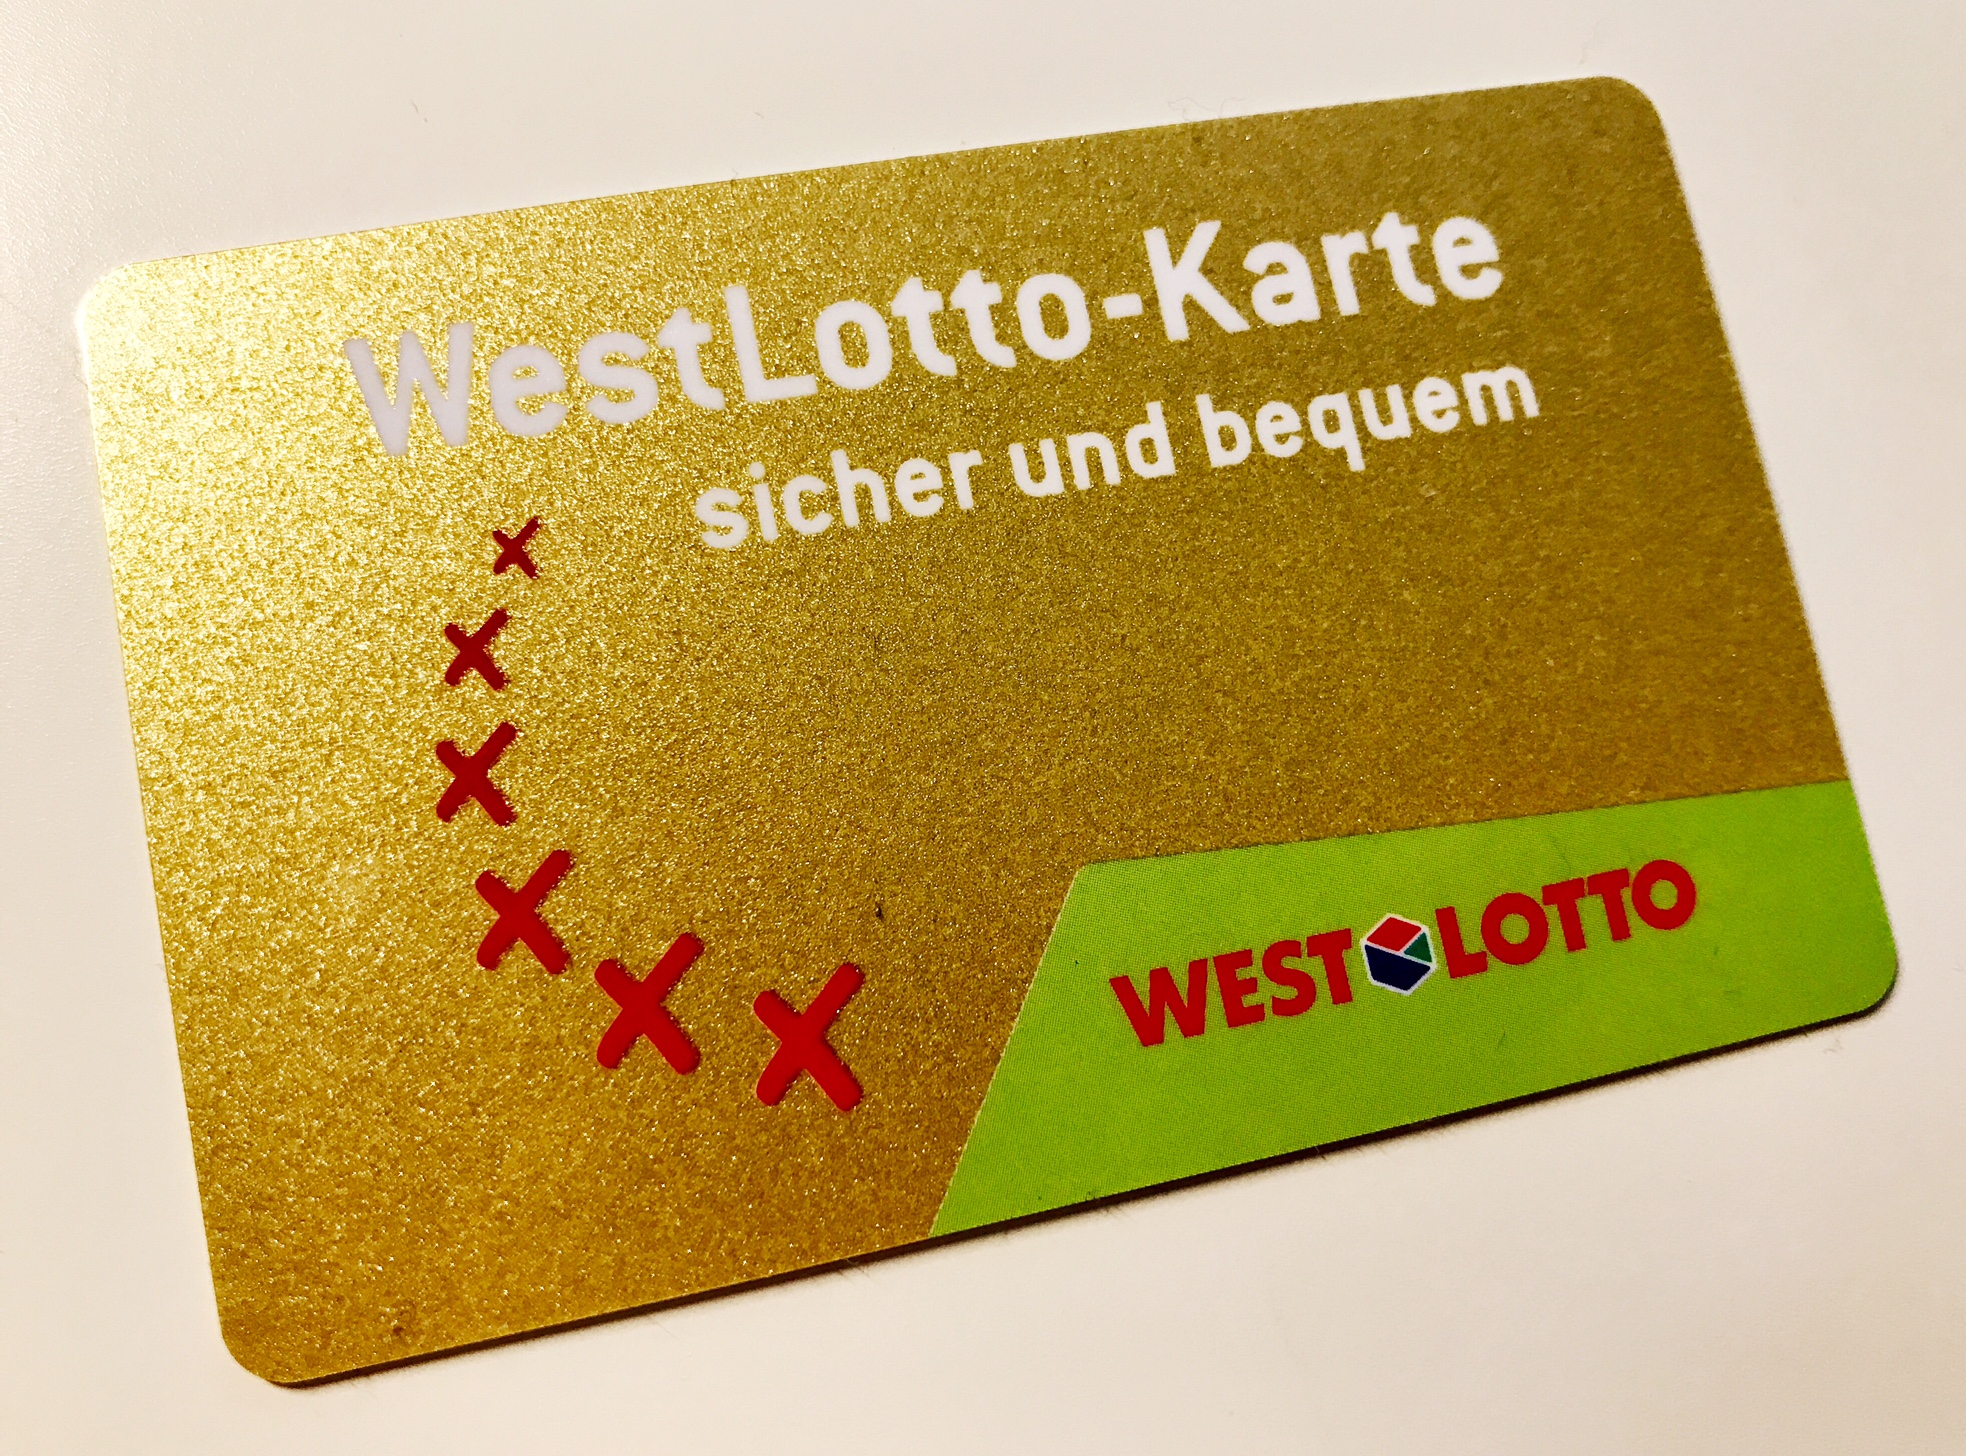 West Lotto.De